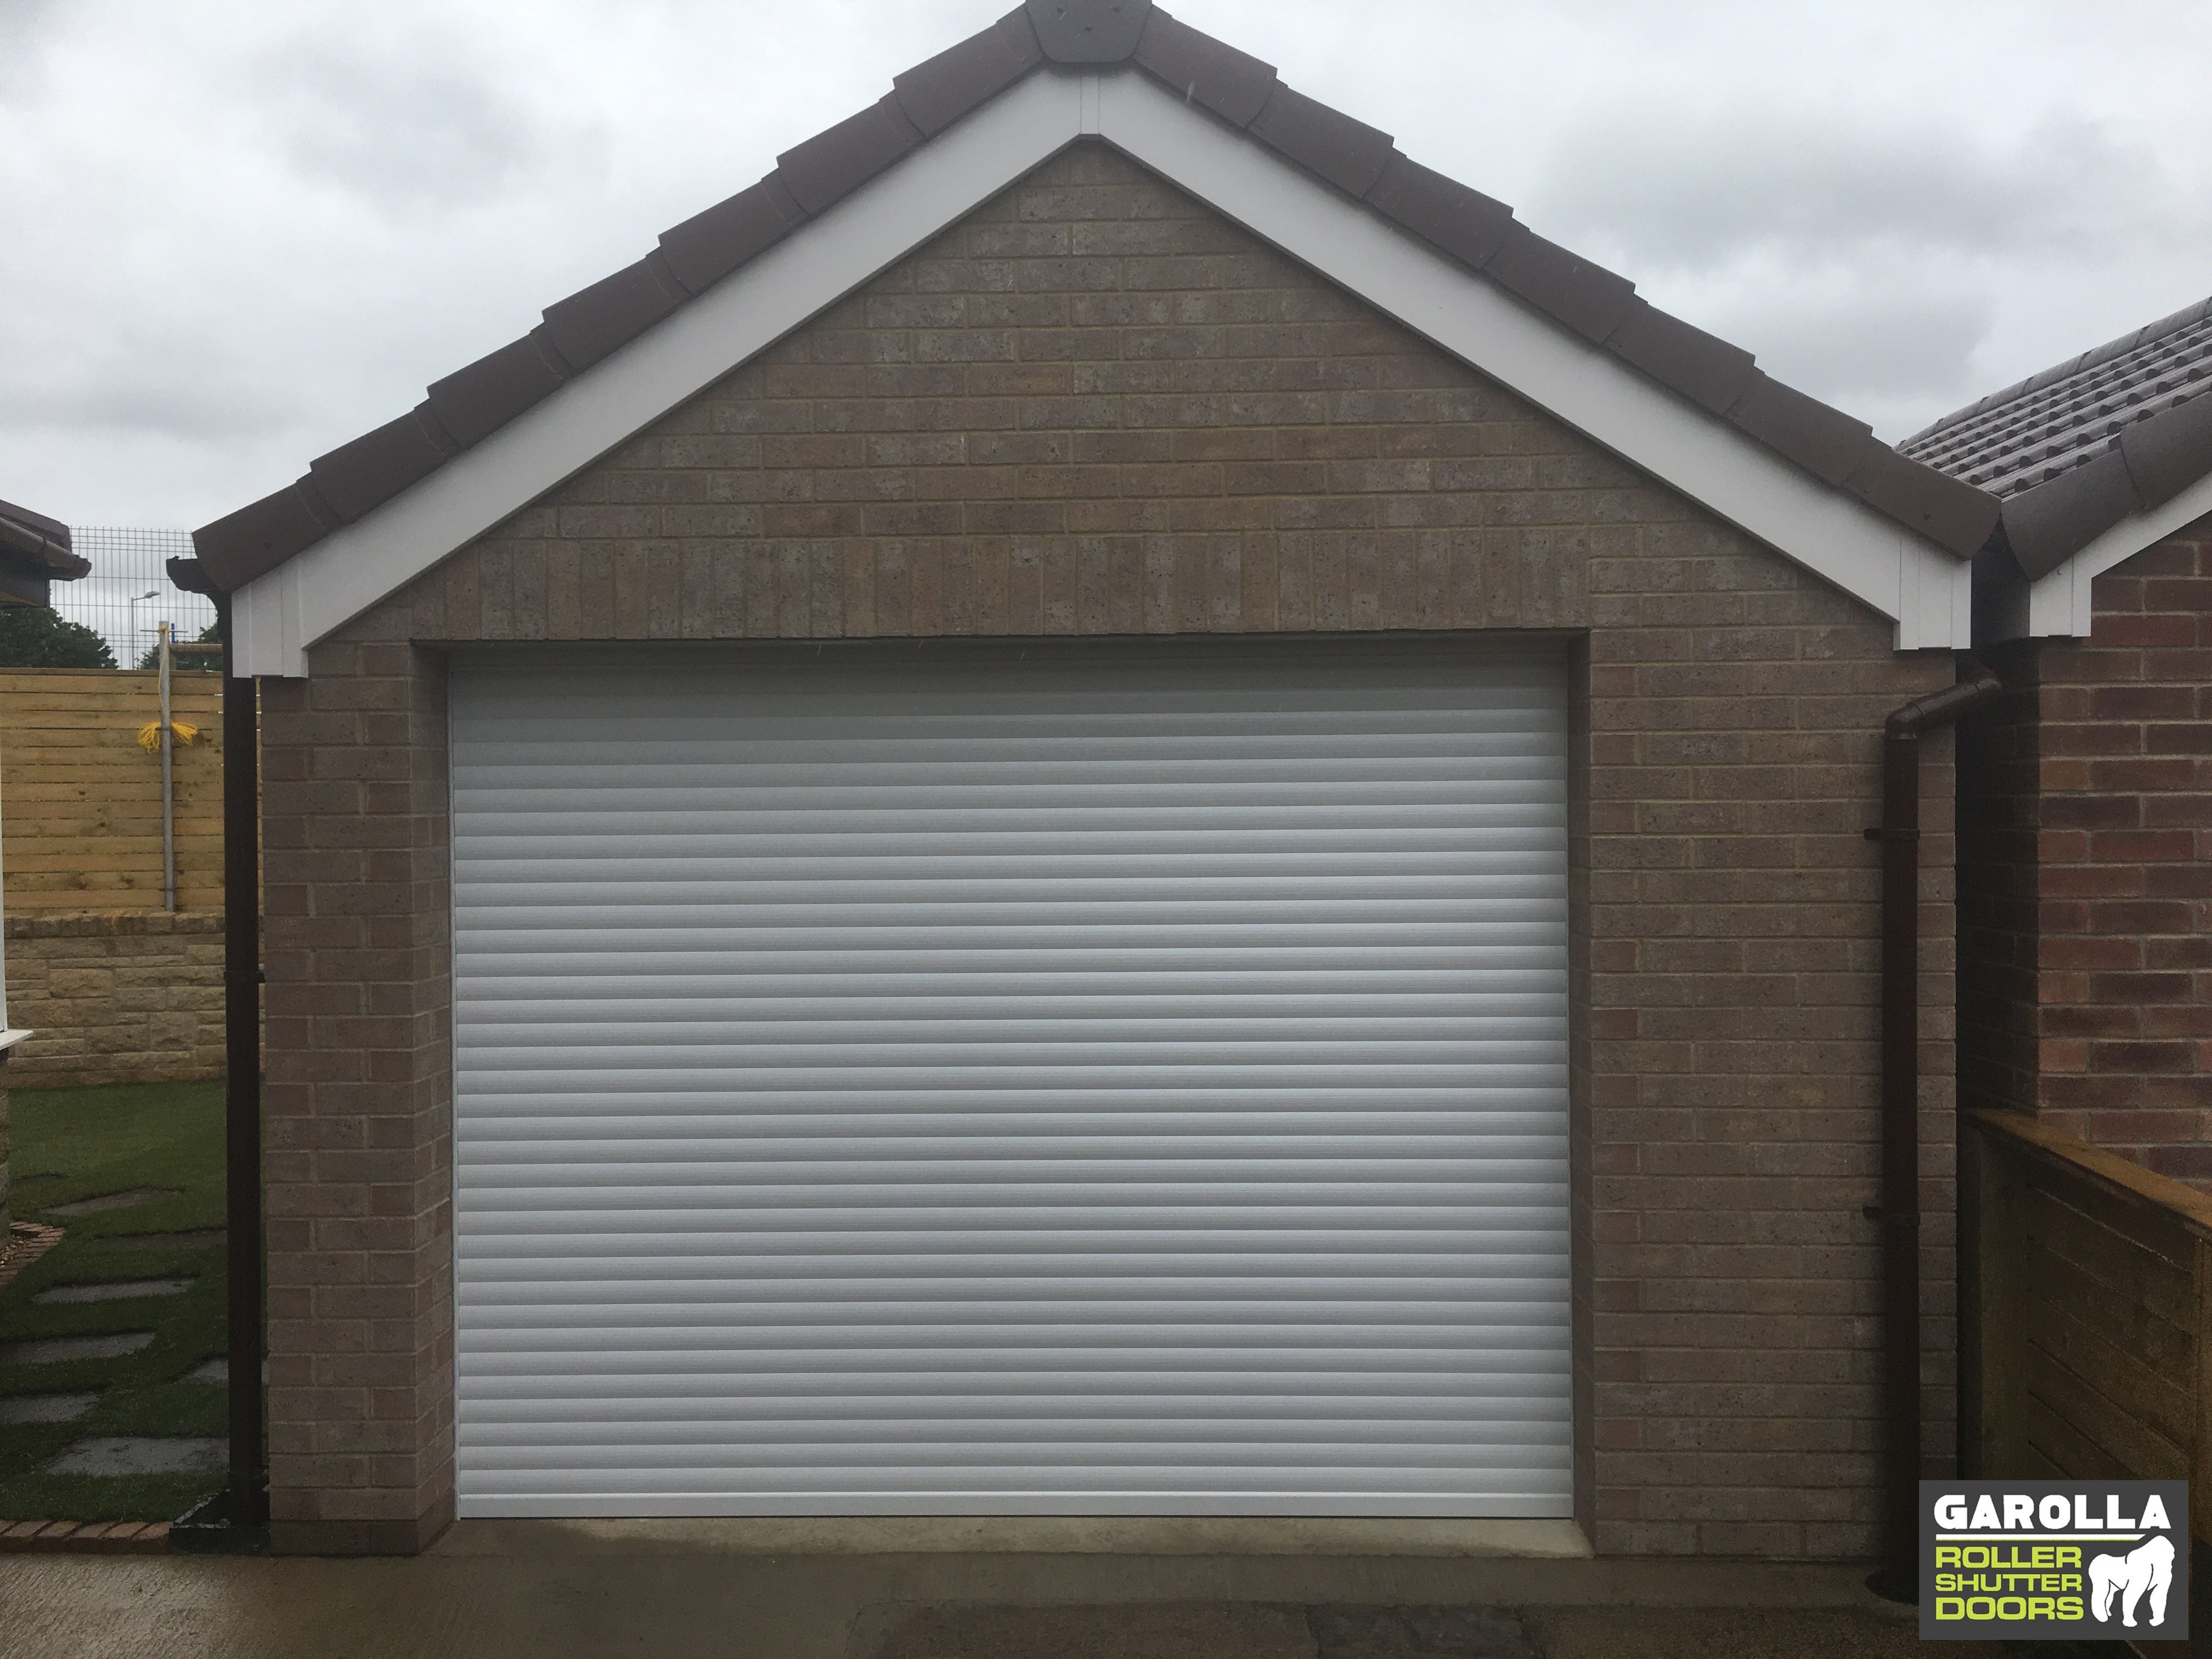 Roller Shutter Garage Doors Garage Door Design White Garage Doors Garage Doors